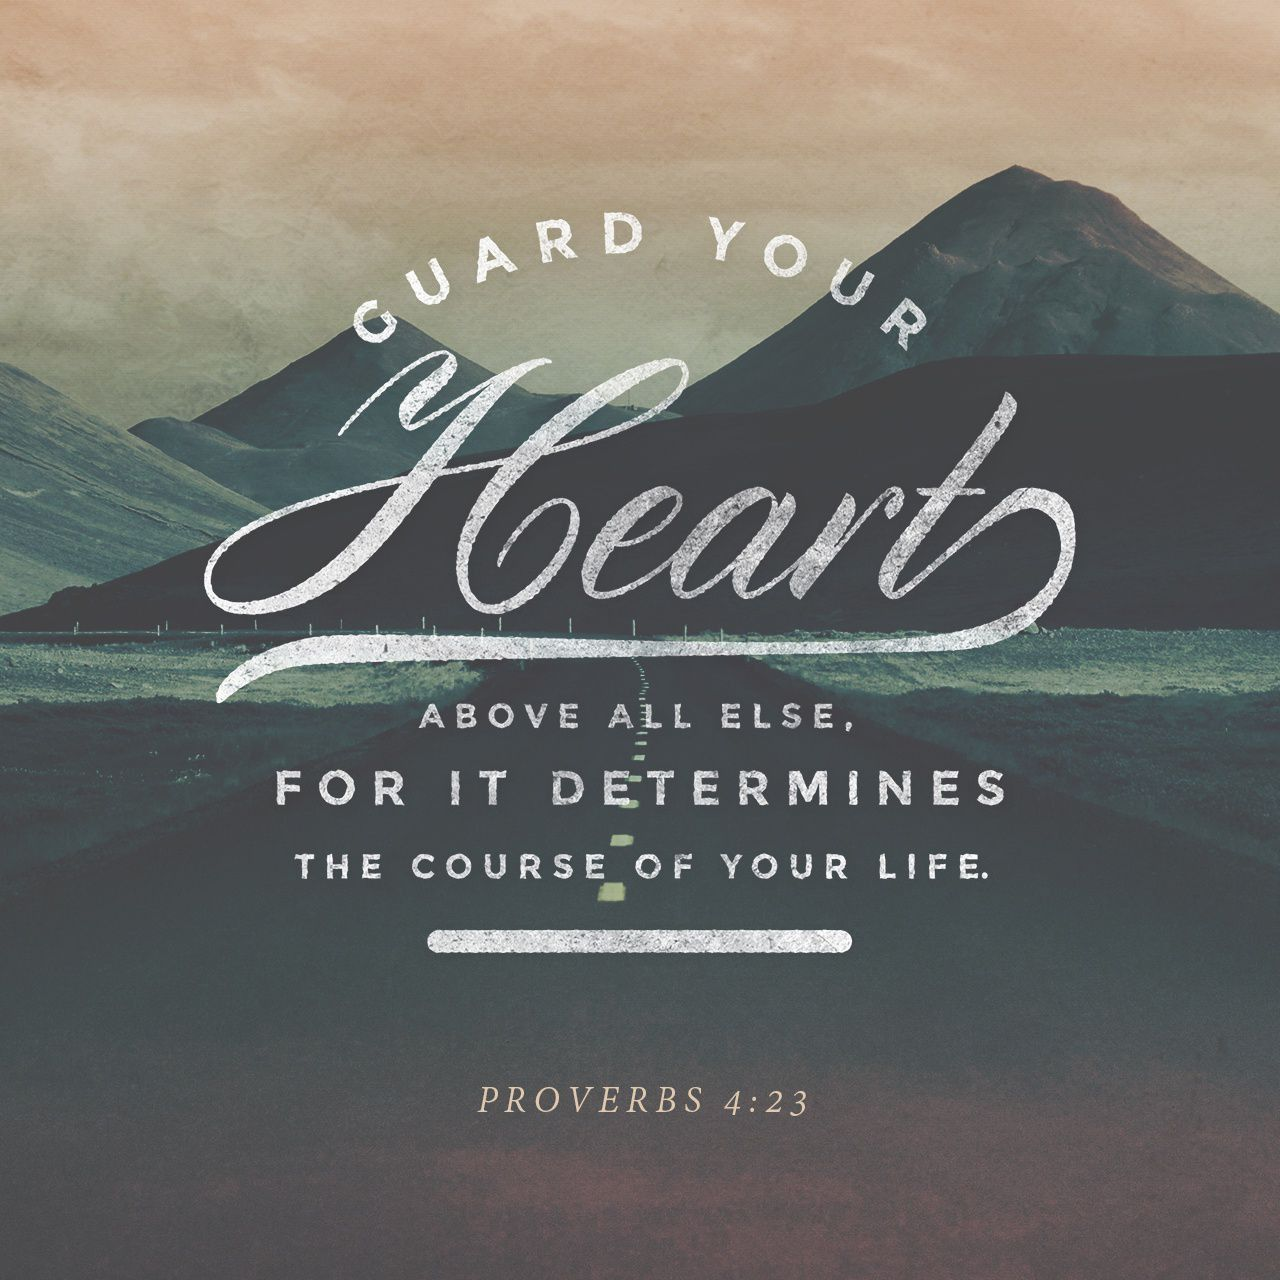 Keep thy heart with all diligence; for out of it are the issues of life.  Proverbs 4:23 KJV (With images) | Bible quotes, Scripture verses, Proverbs 4